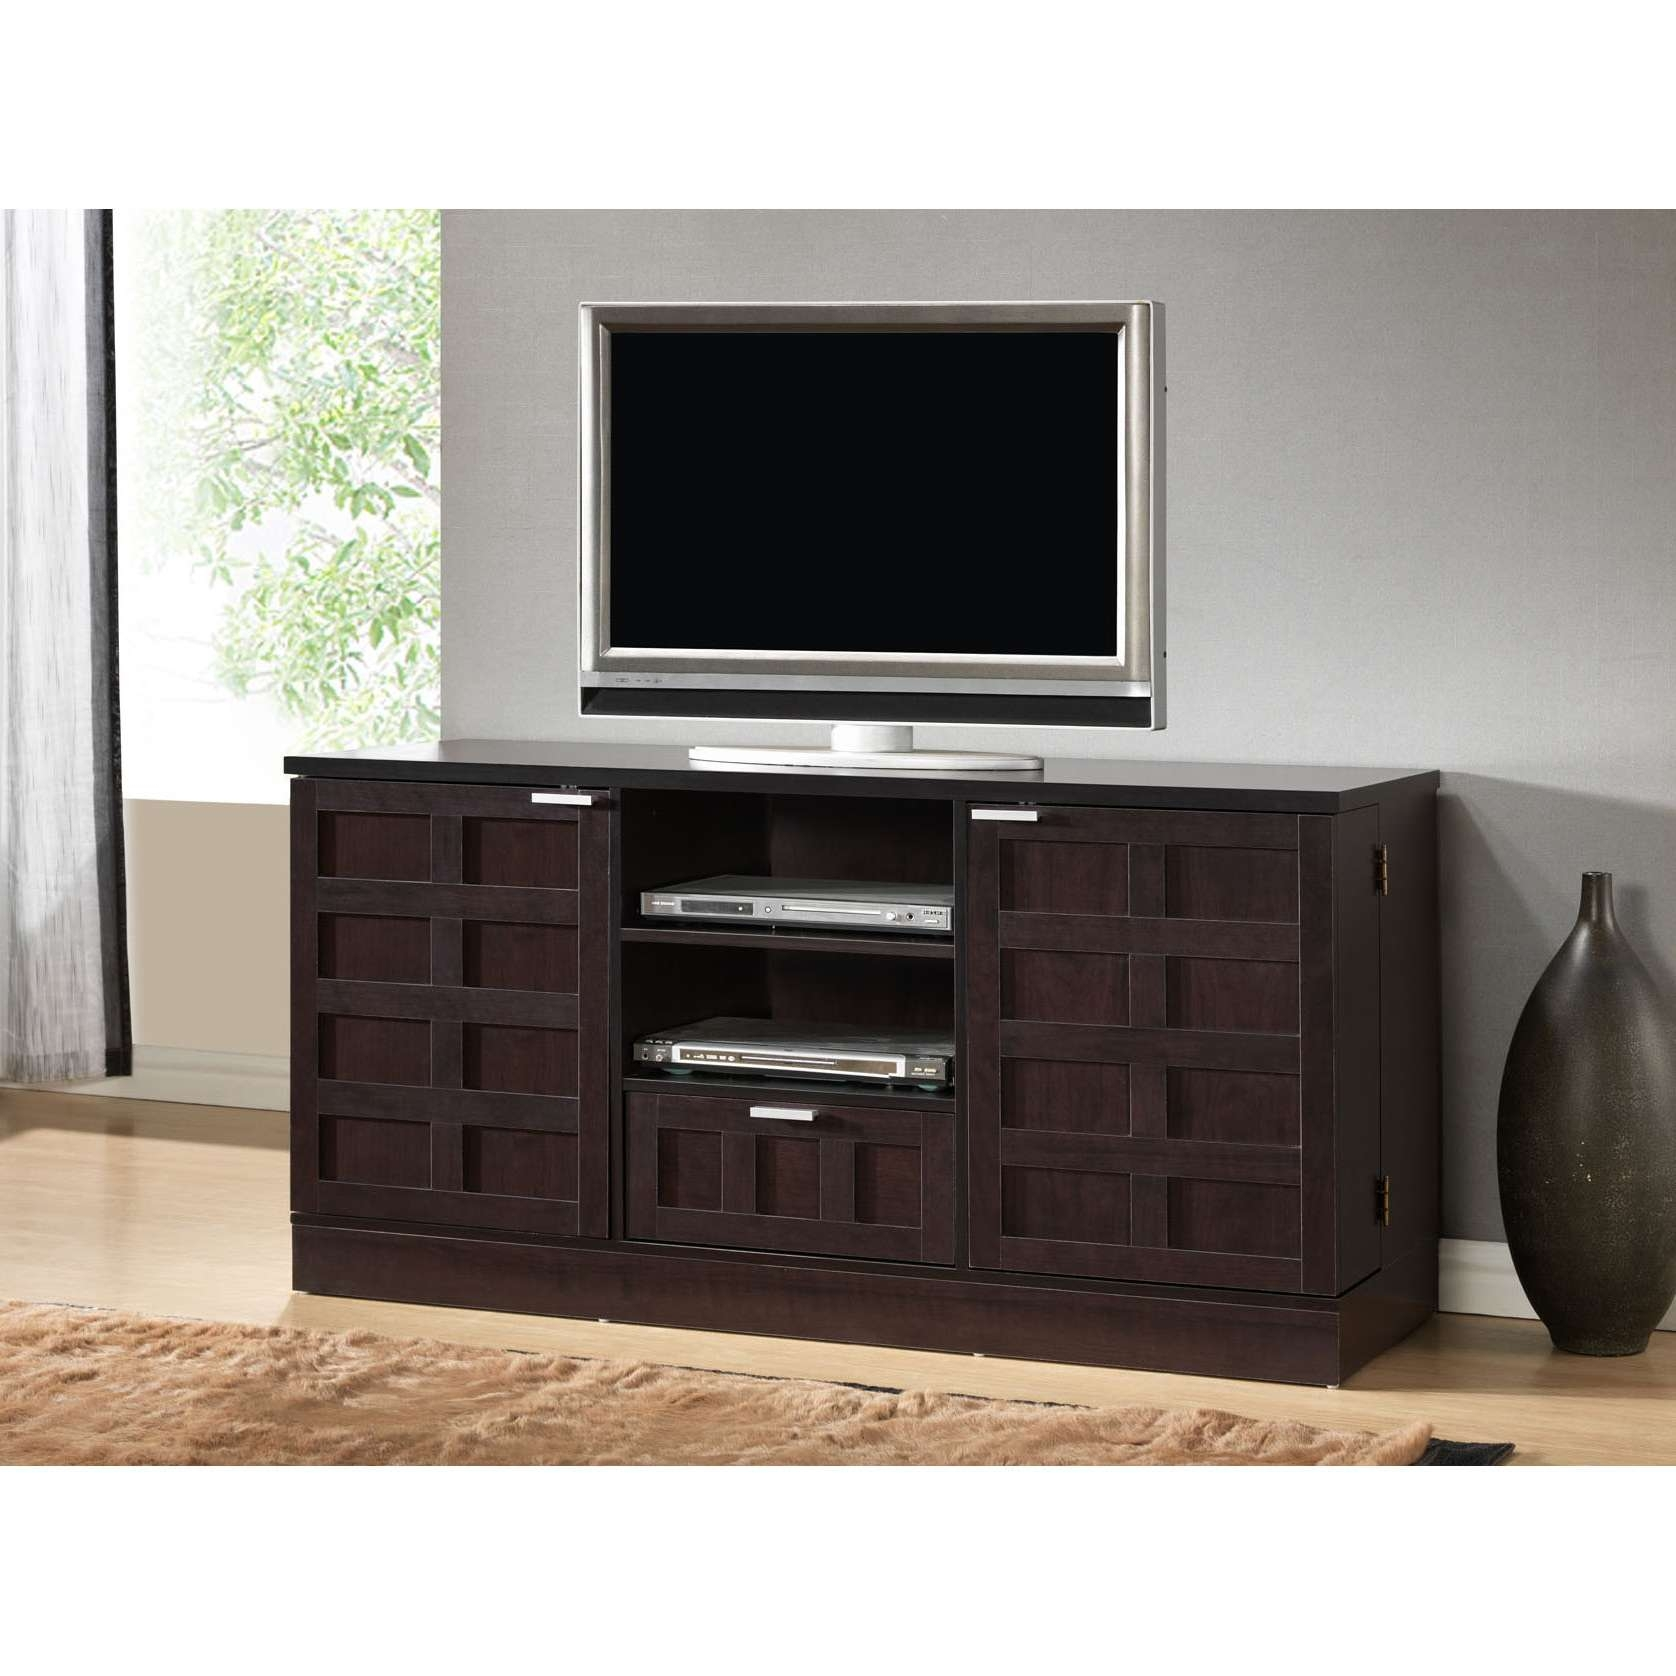 Black Wooden Tv Cabinet With Doors And Racks Also Single Drawer On For Black Tv Cabinets With Doors (View 4 of 20)